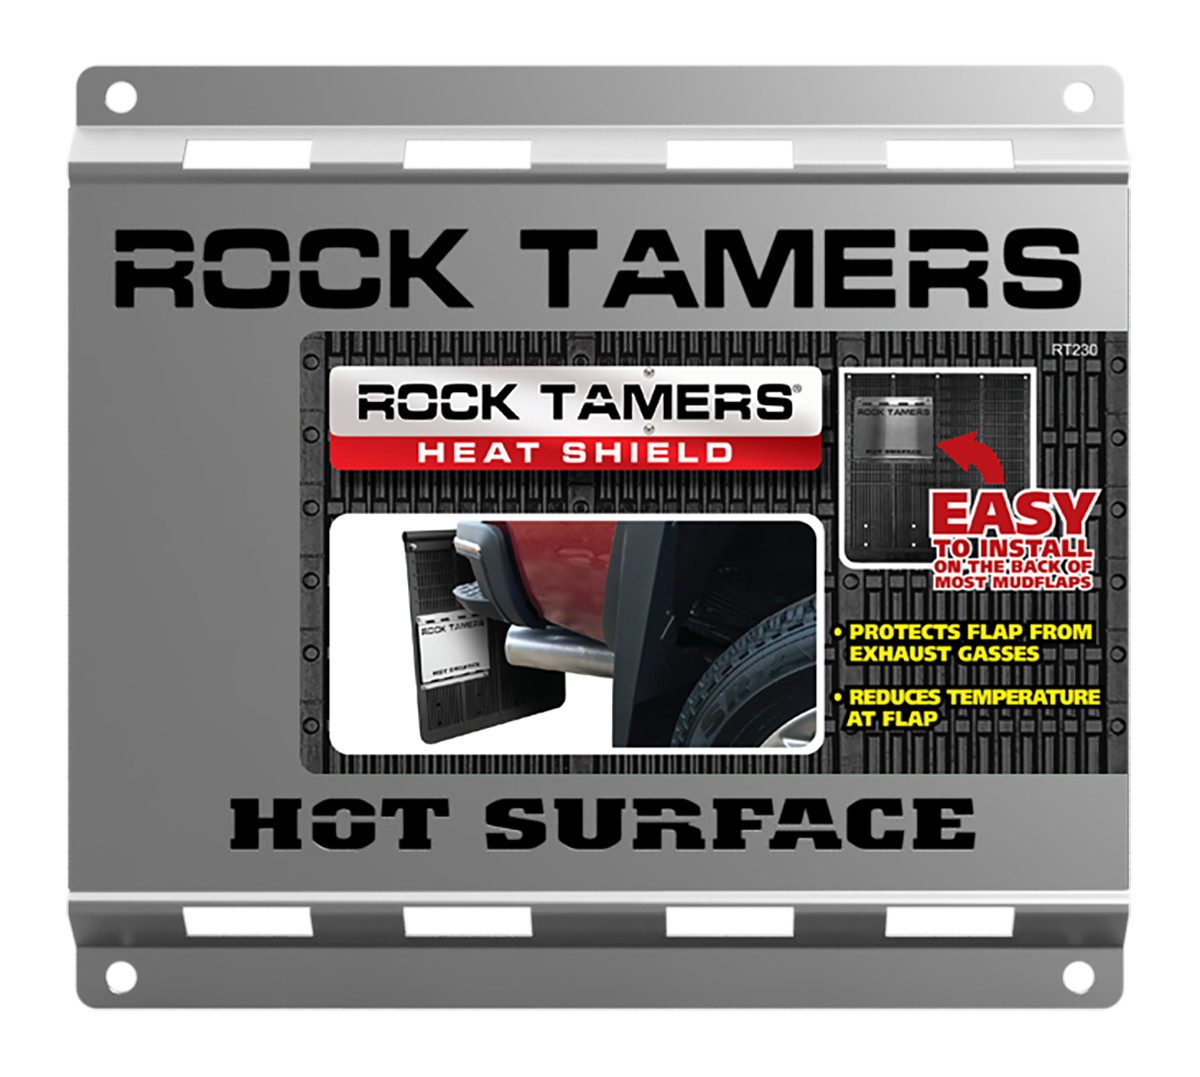 Cruiser Accessories RT220 Rock Tamers Bolt Bumpers